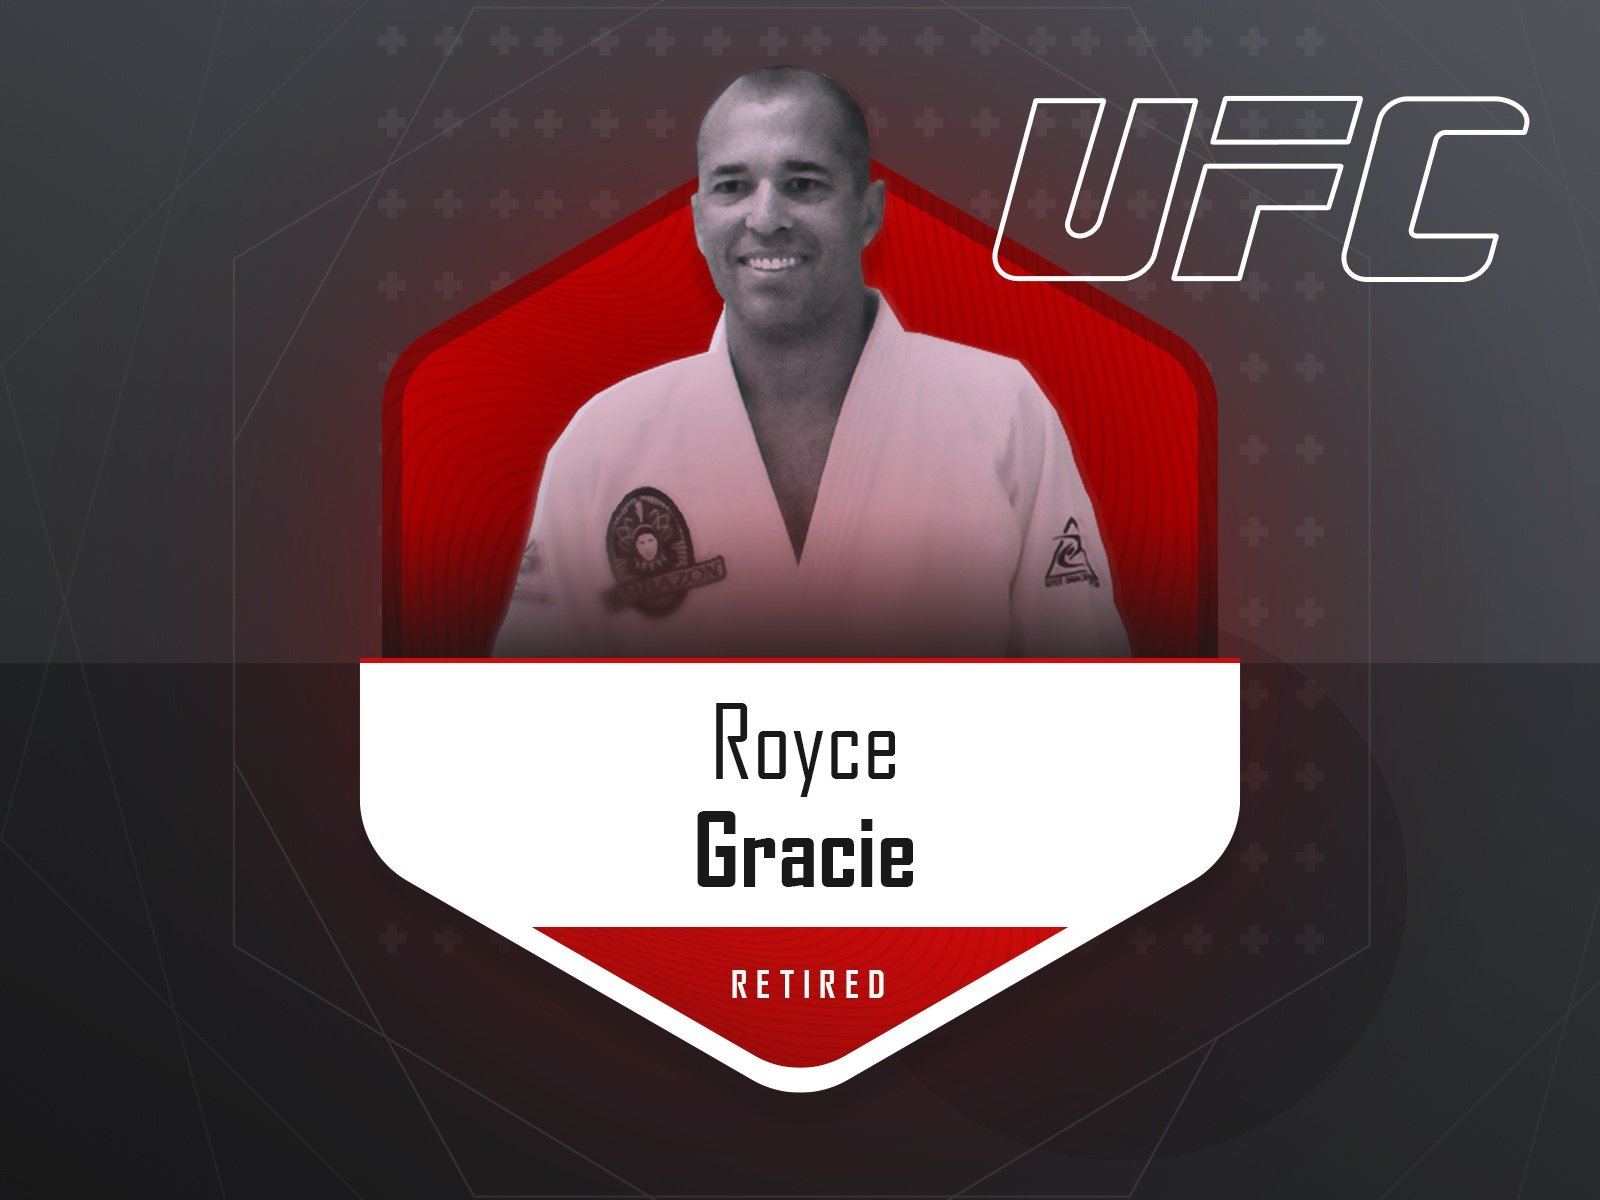 Royce Gracie - UFC fighter